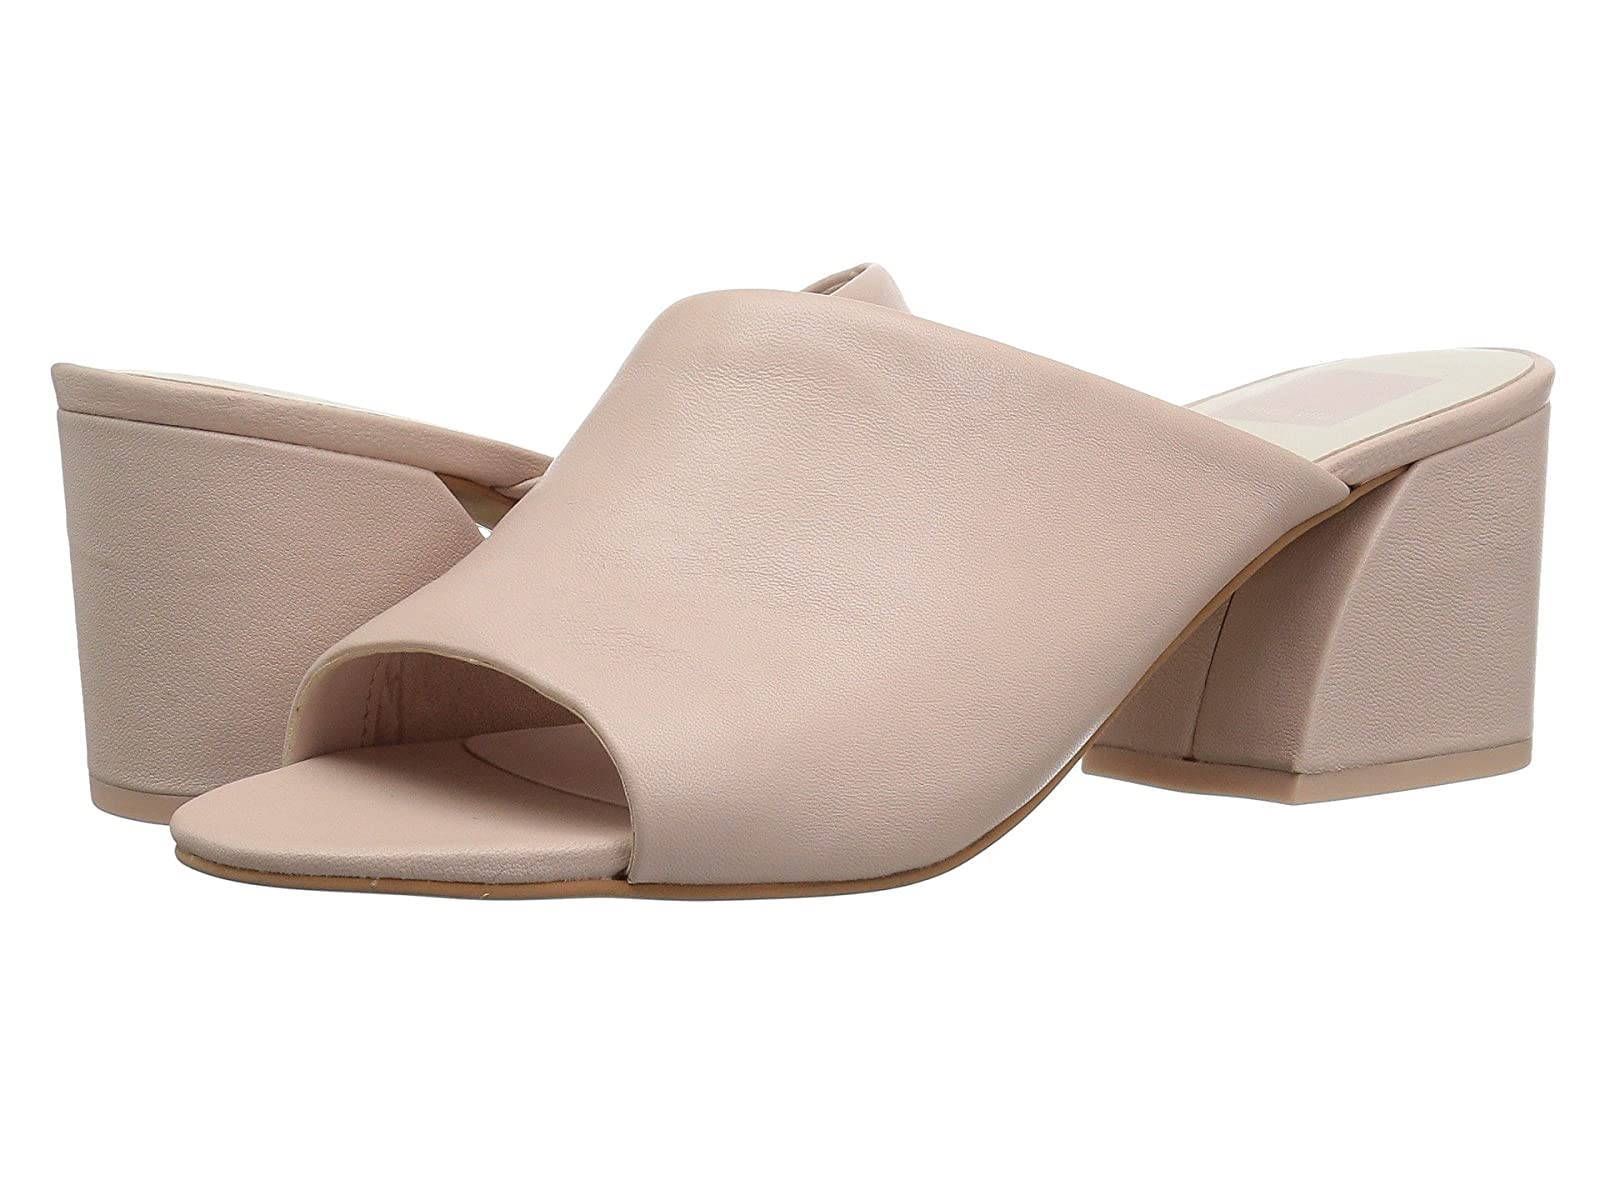 Dolce Vita JuelsCheap and distinctive eye-catching shoes